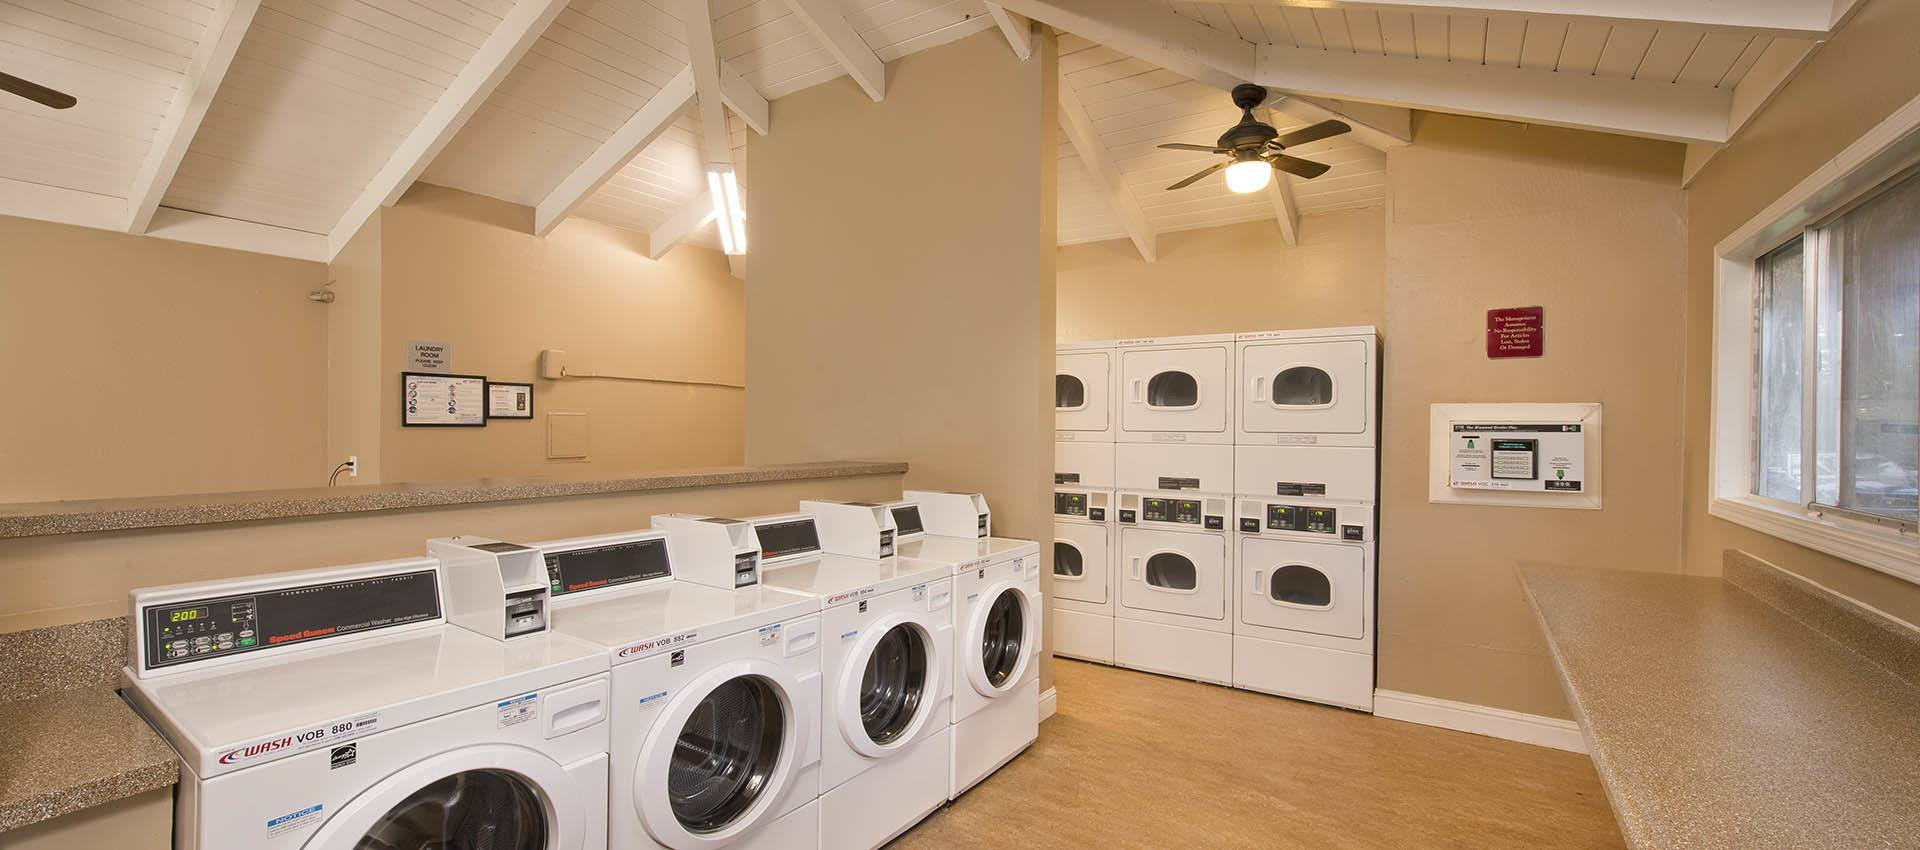 Laundry facilities at Villa Palms Apartment Homes in Livermore, California